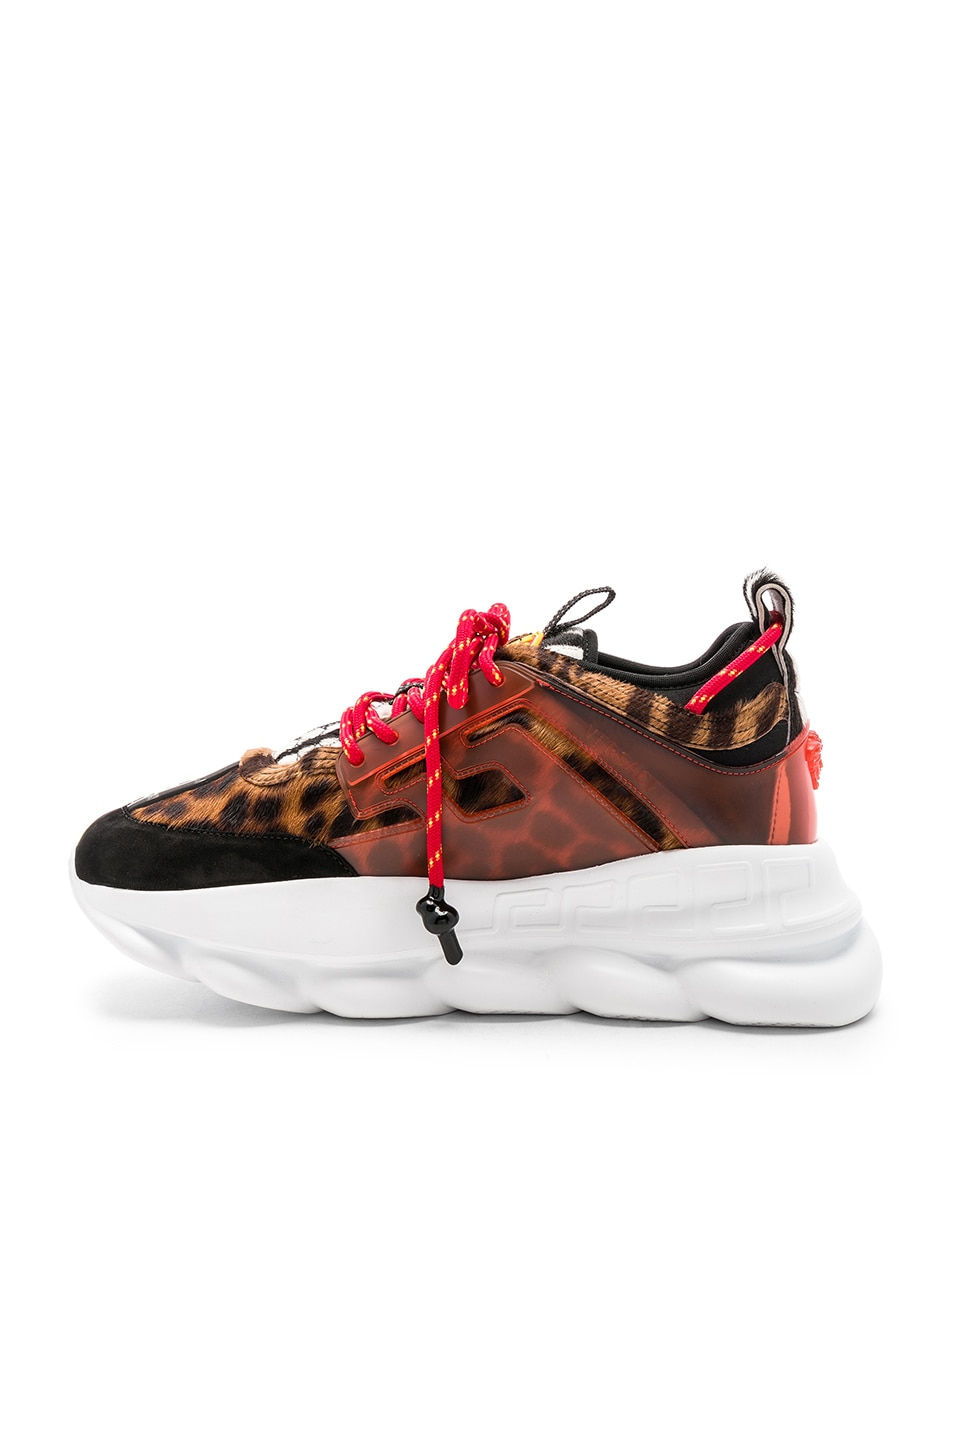 Image 5 of VERSACE Calf Hair Chain Reaction Sneakers in Black & Red Print